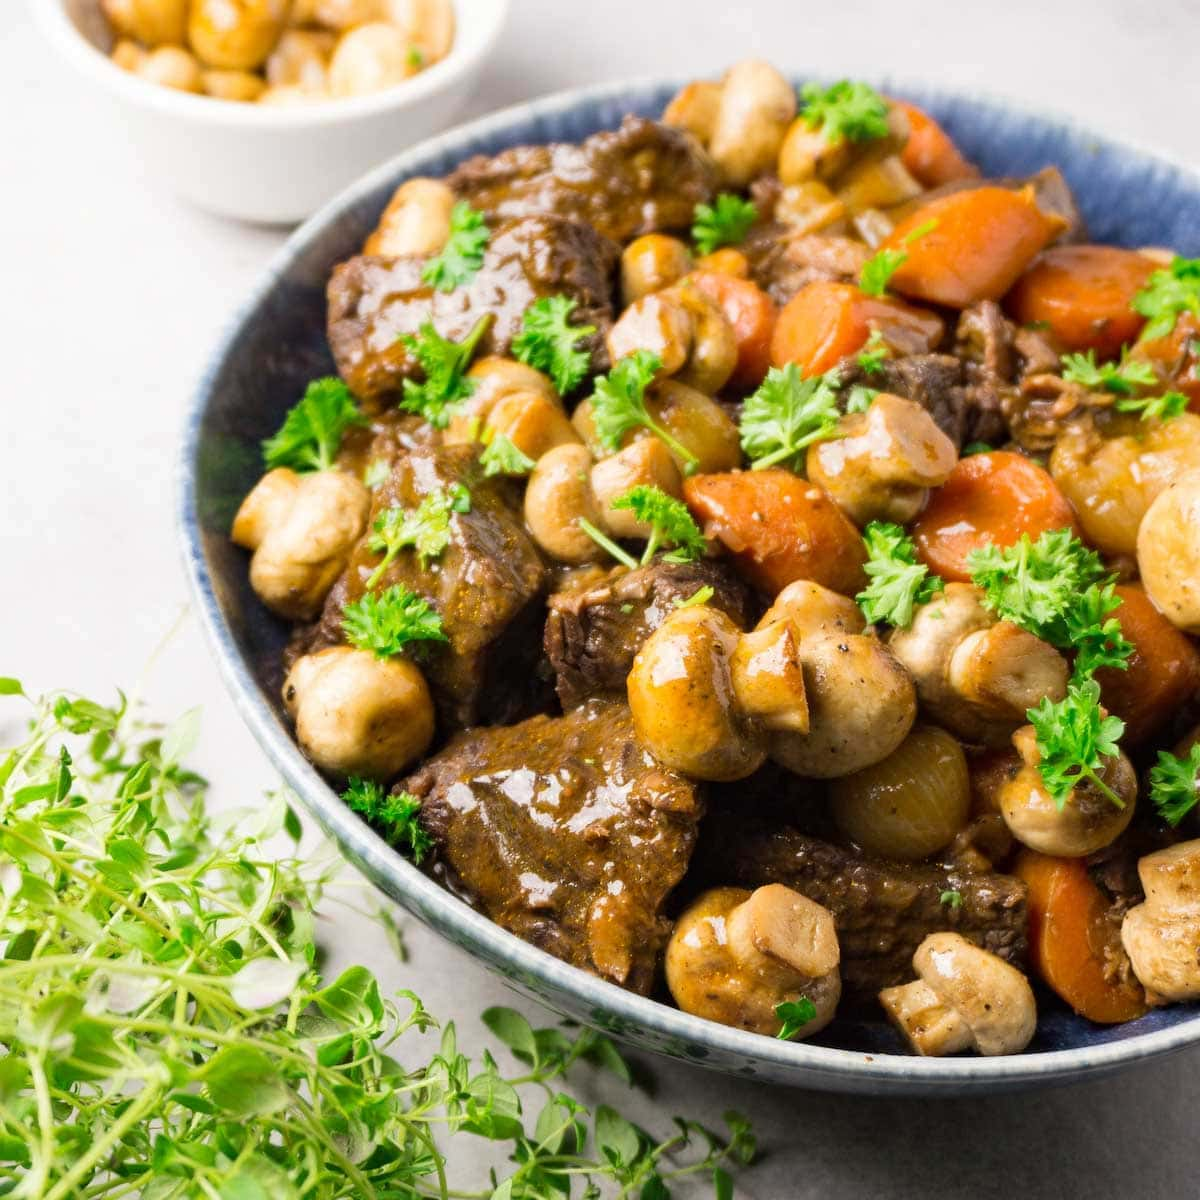 A round bowl with beef Burgundy garnished with fresh parsley.